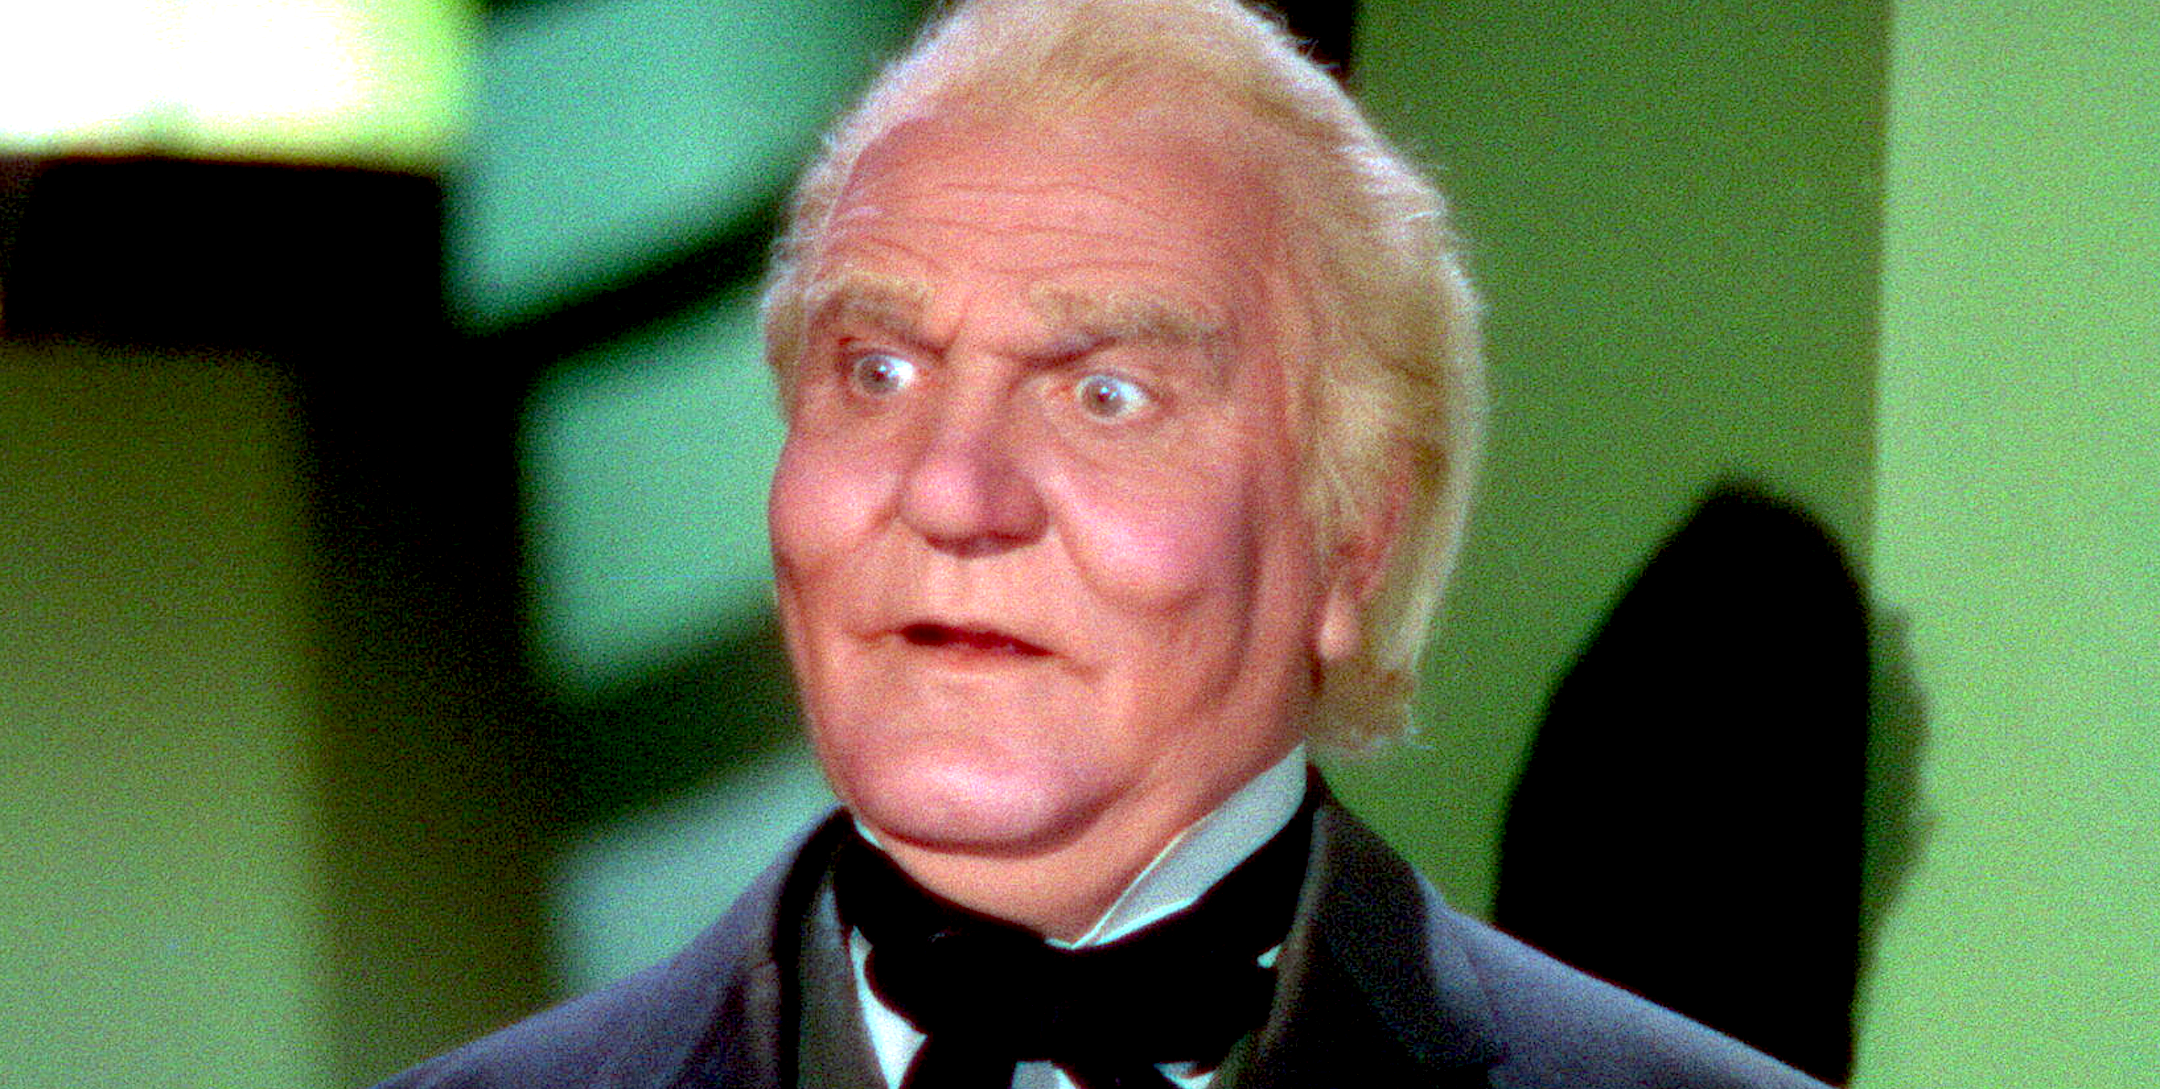 movies, the wizard of oz, 1939, frank morgan as the wizard, AMC